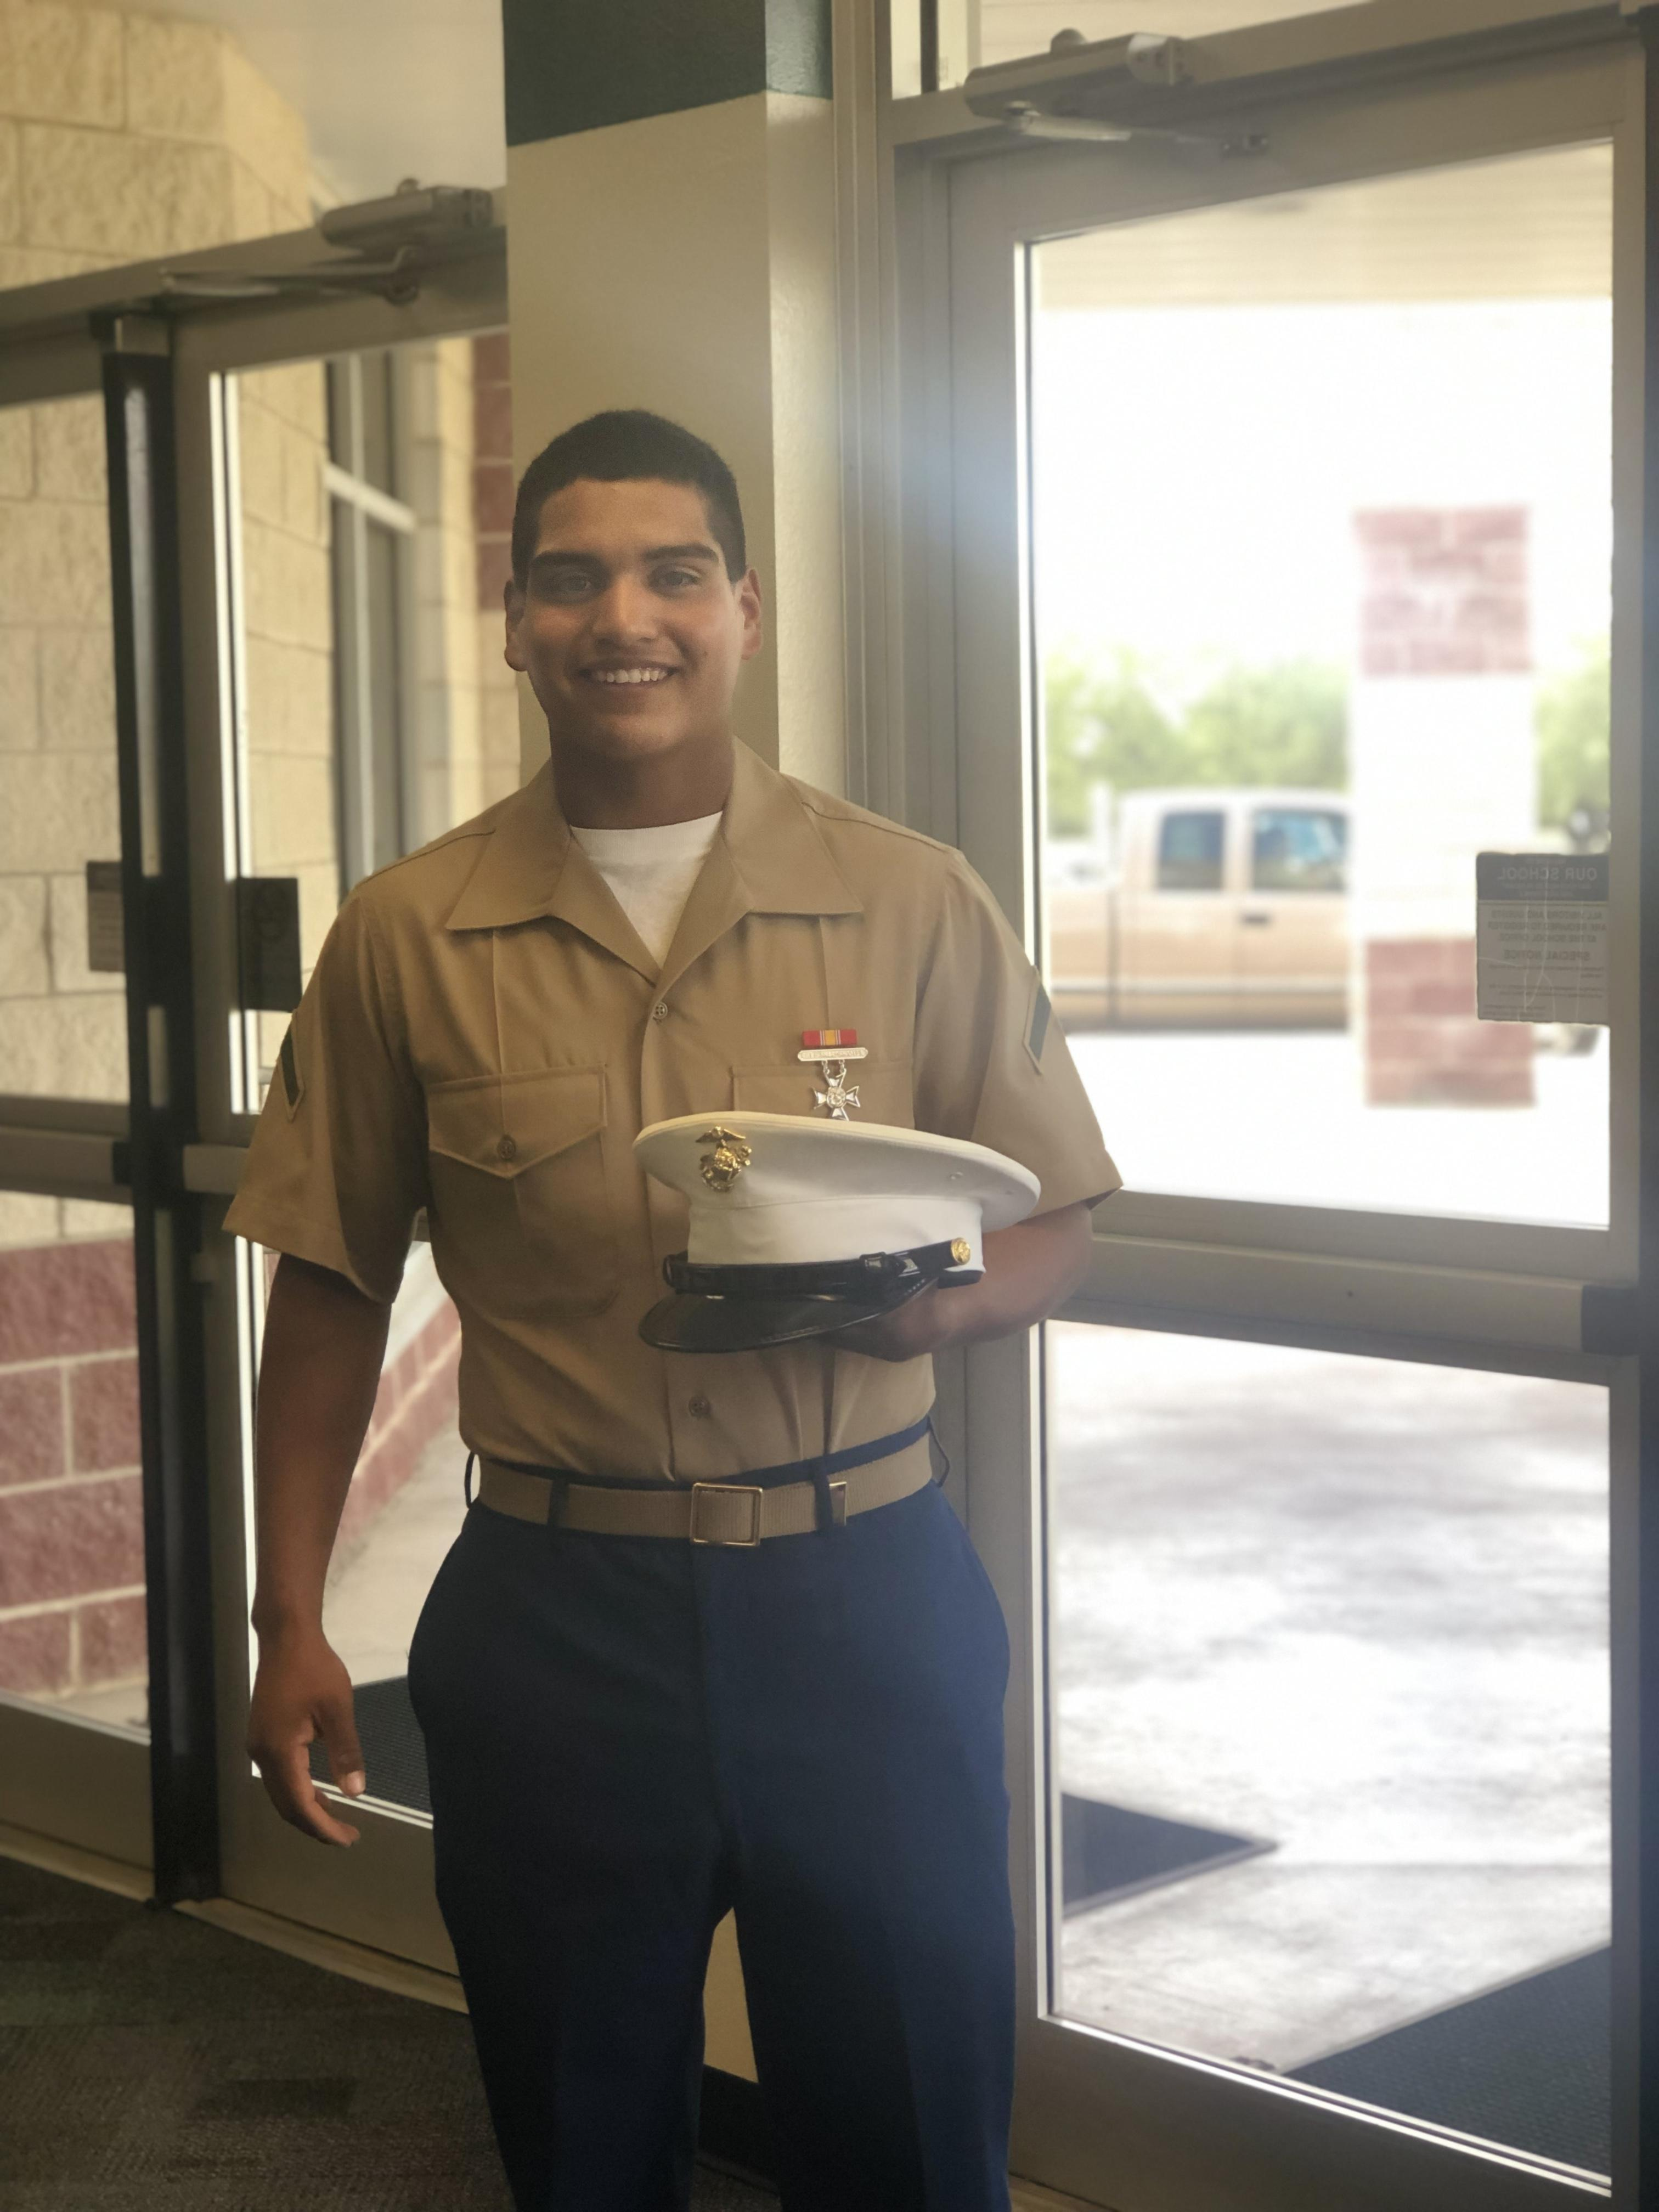 Picture of Gio Guevara, former GCISD graduate, who recently graduated from the United States Marine Corp.